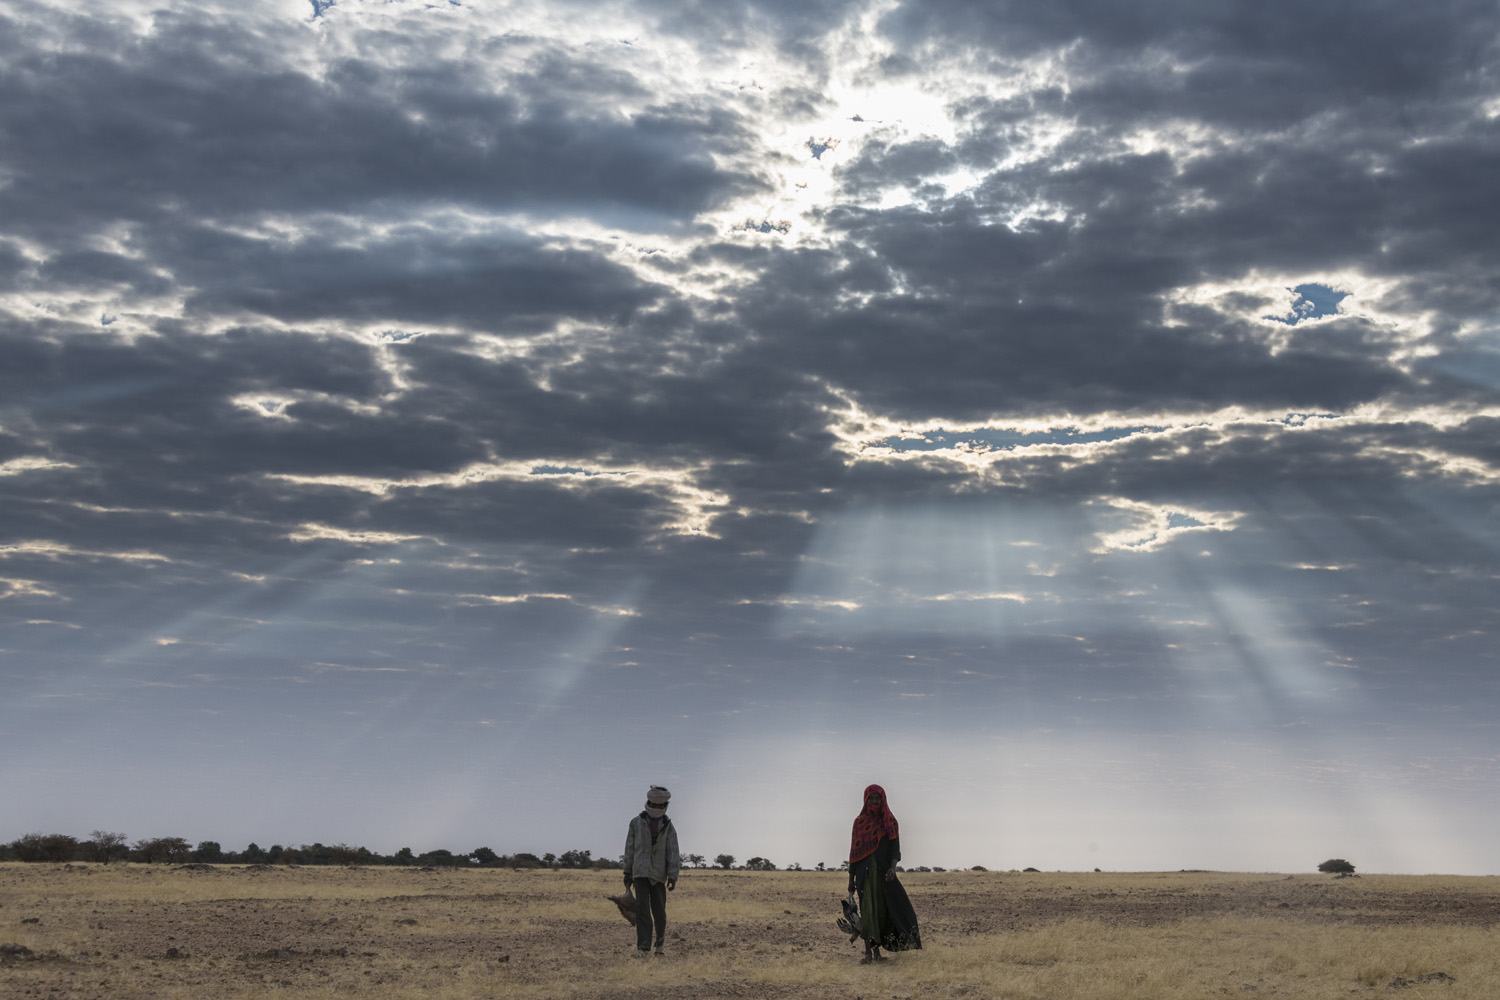 Beduin children walking under a dramatic sky in the Sahel, Chad, Africa